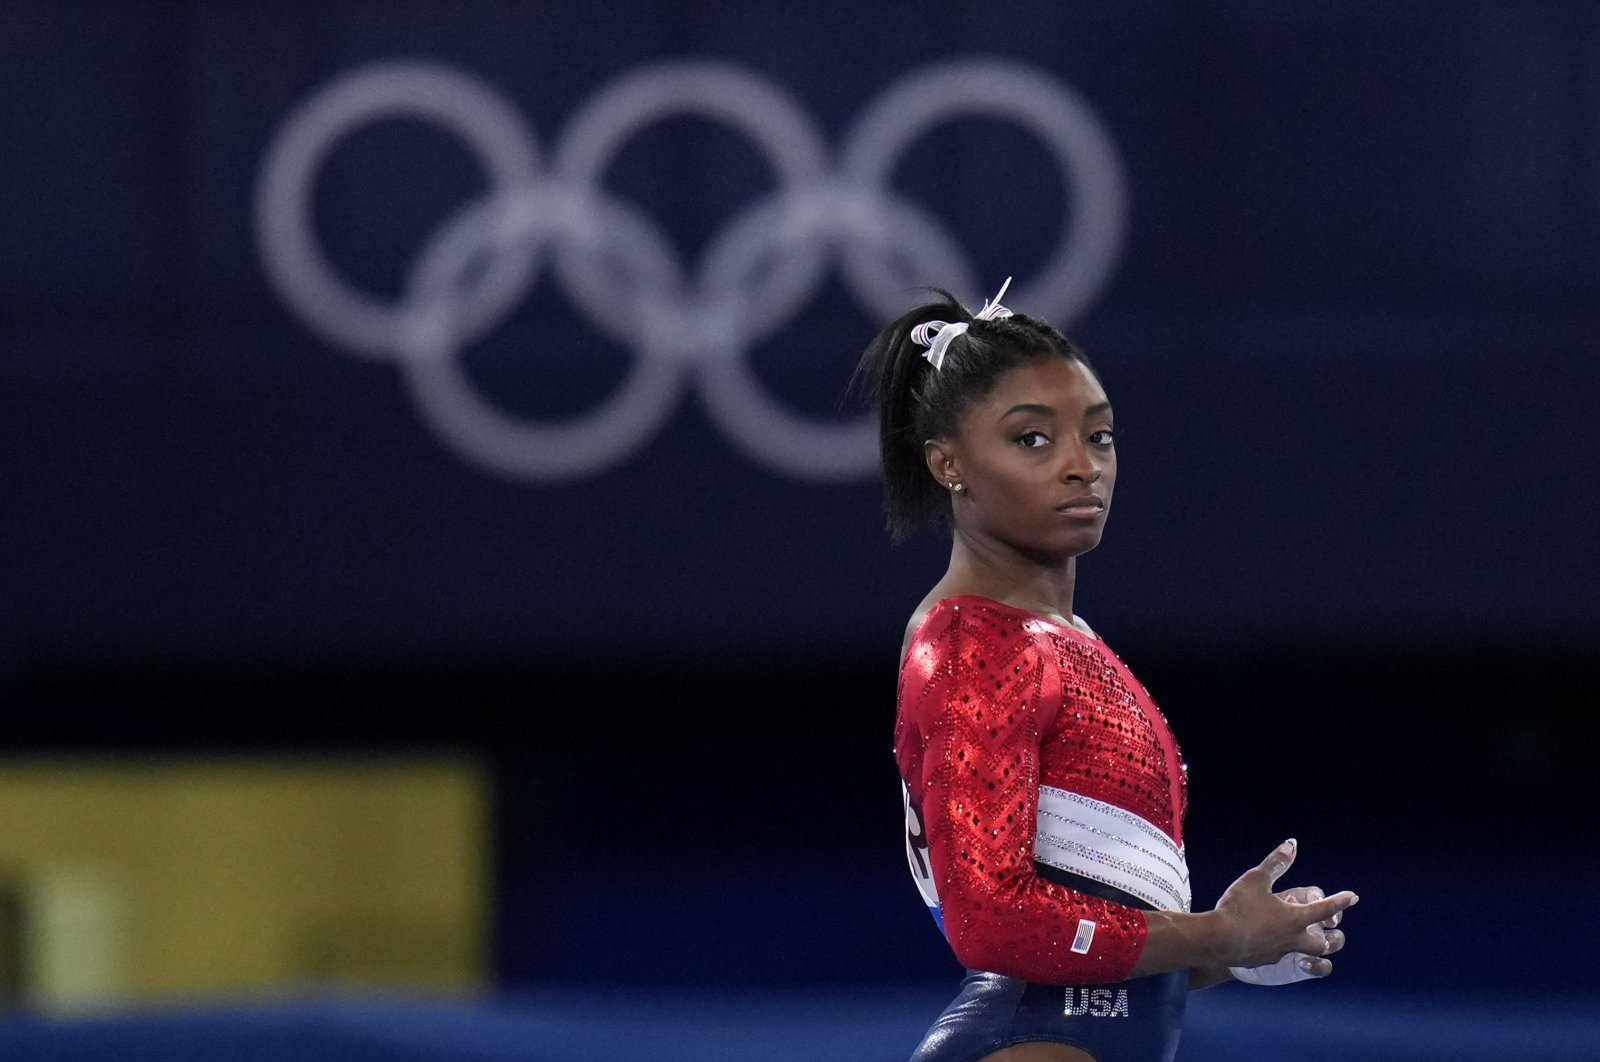 Simone Biles, of the United States, waits to perform on the vault during the artistic gymnastics women's final at the 2020 Summer Olympics, Tokyo, Japan, July 27, 2021. (AP Photo)